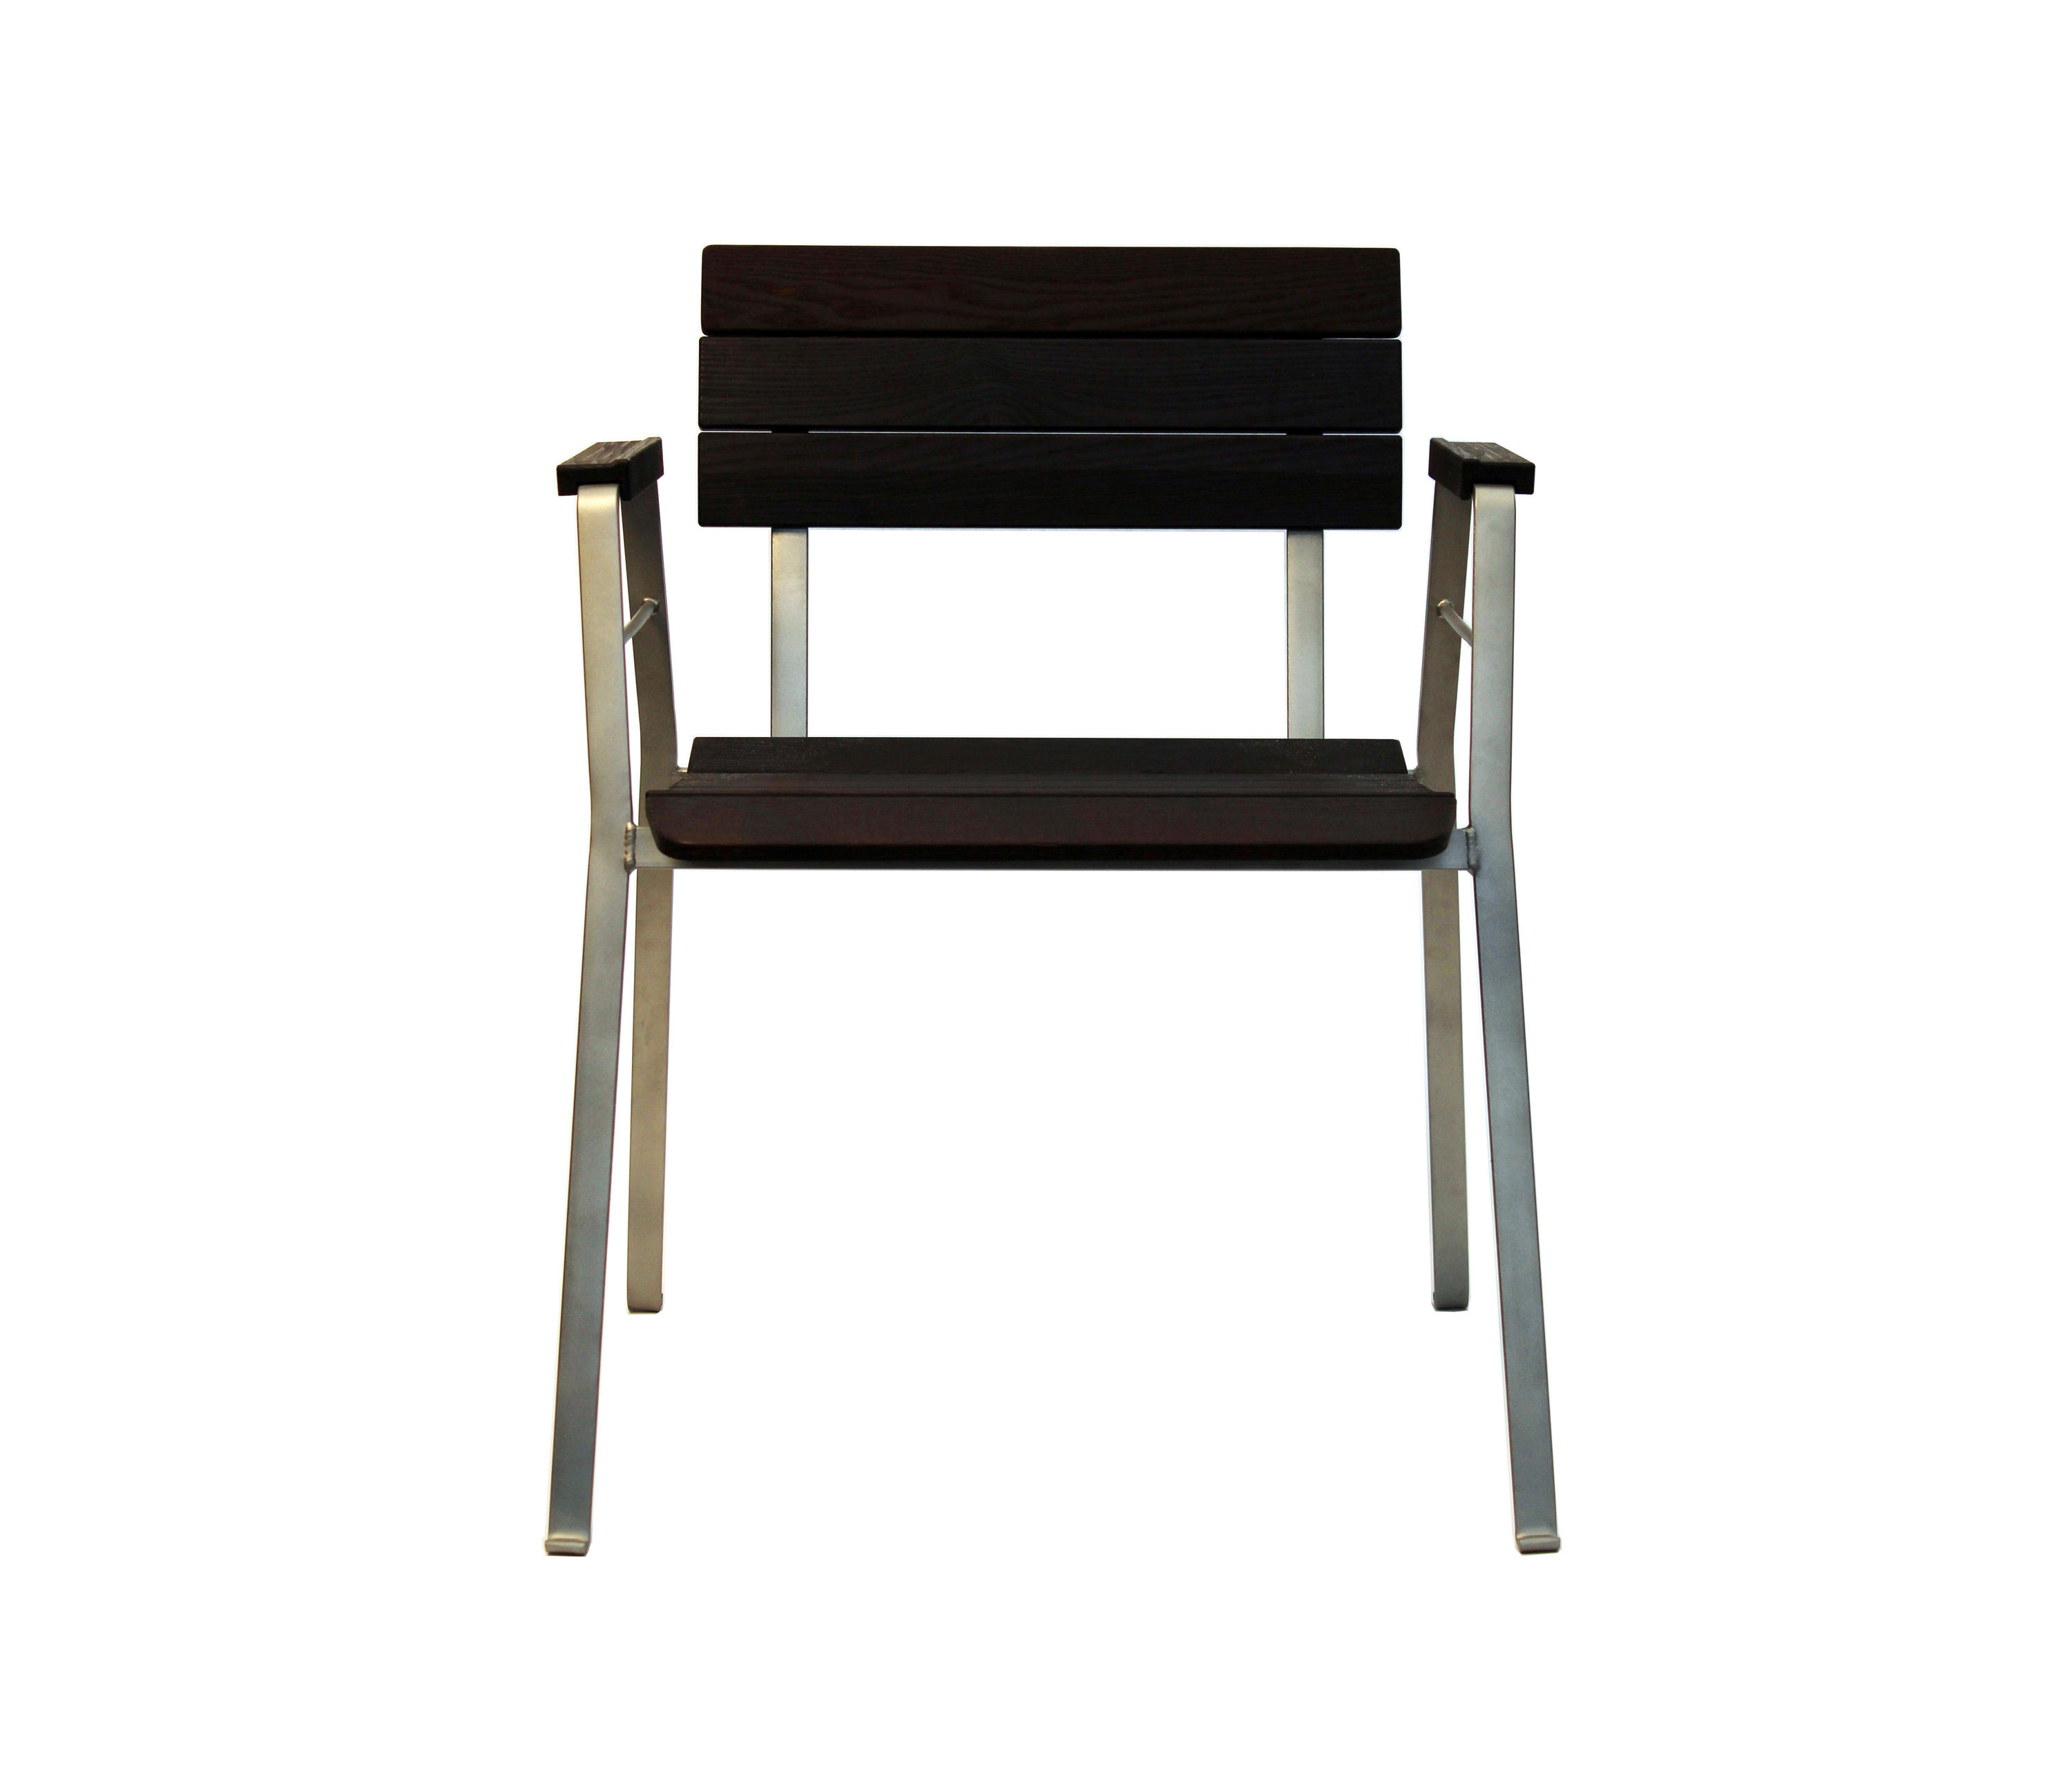 CHEVY CHASE CAFé CHAIR Garden chairs from Museum & Library